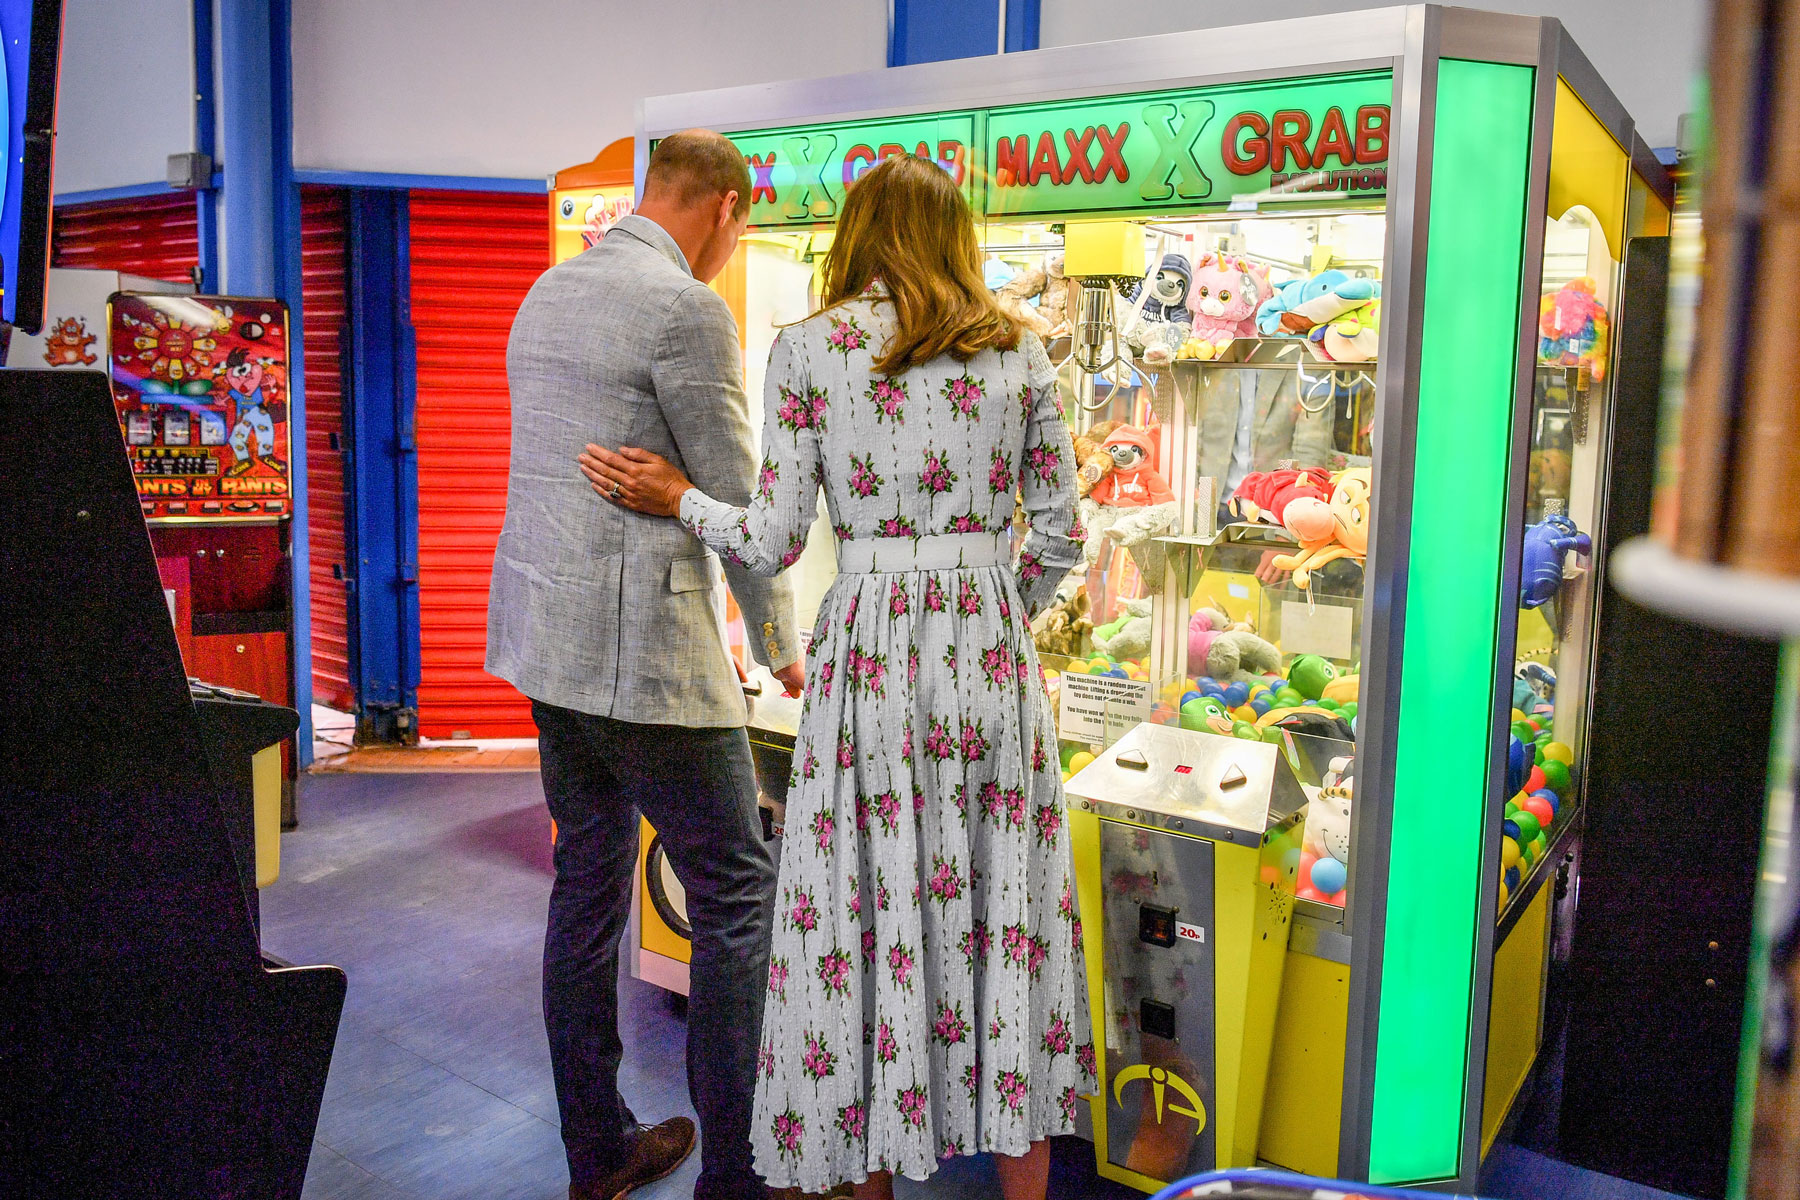 Prince William and Kate Middleton stand in front of an arcade claw machine